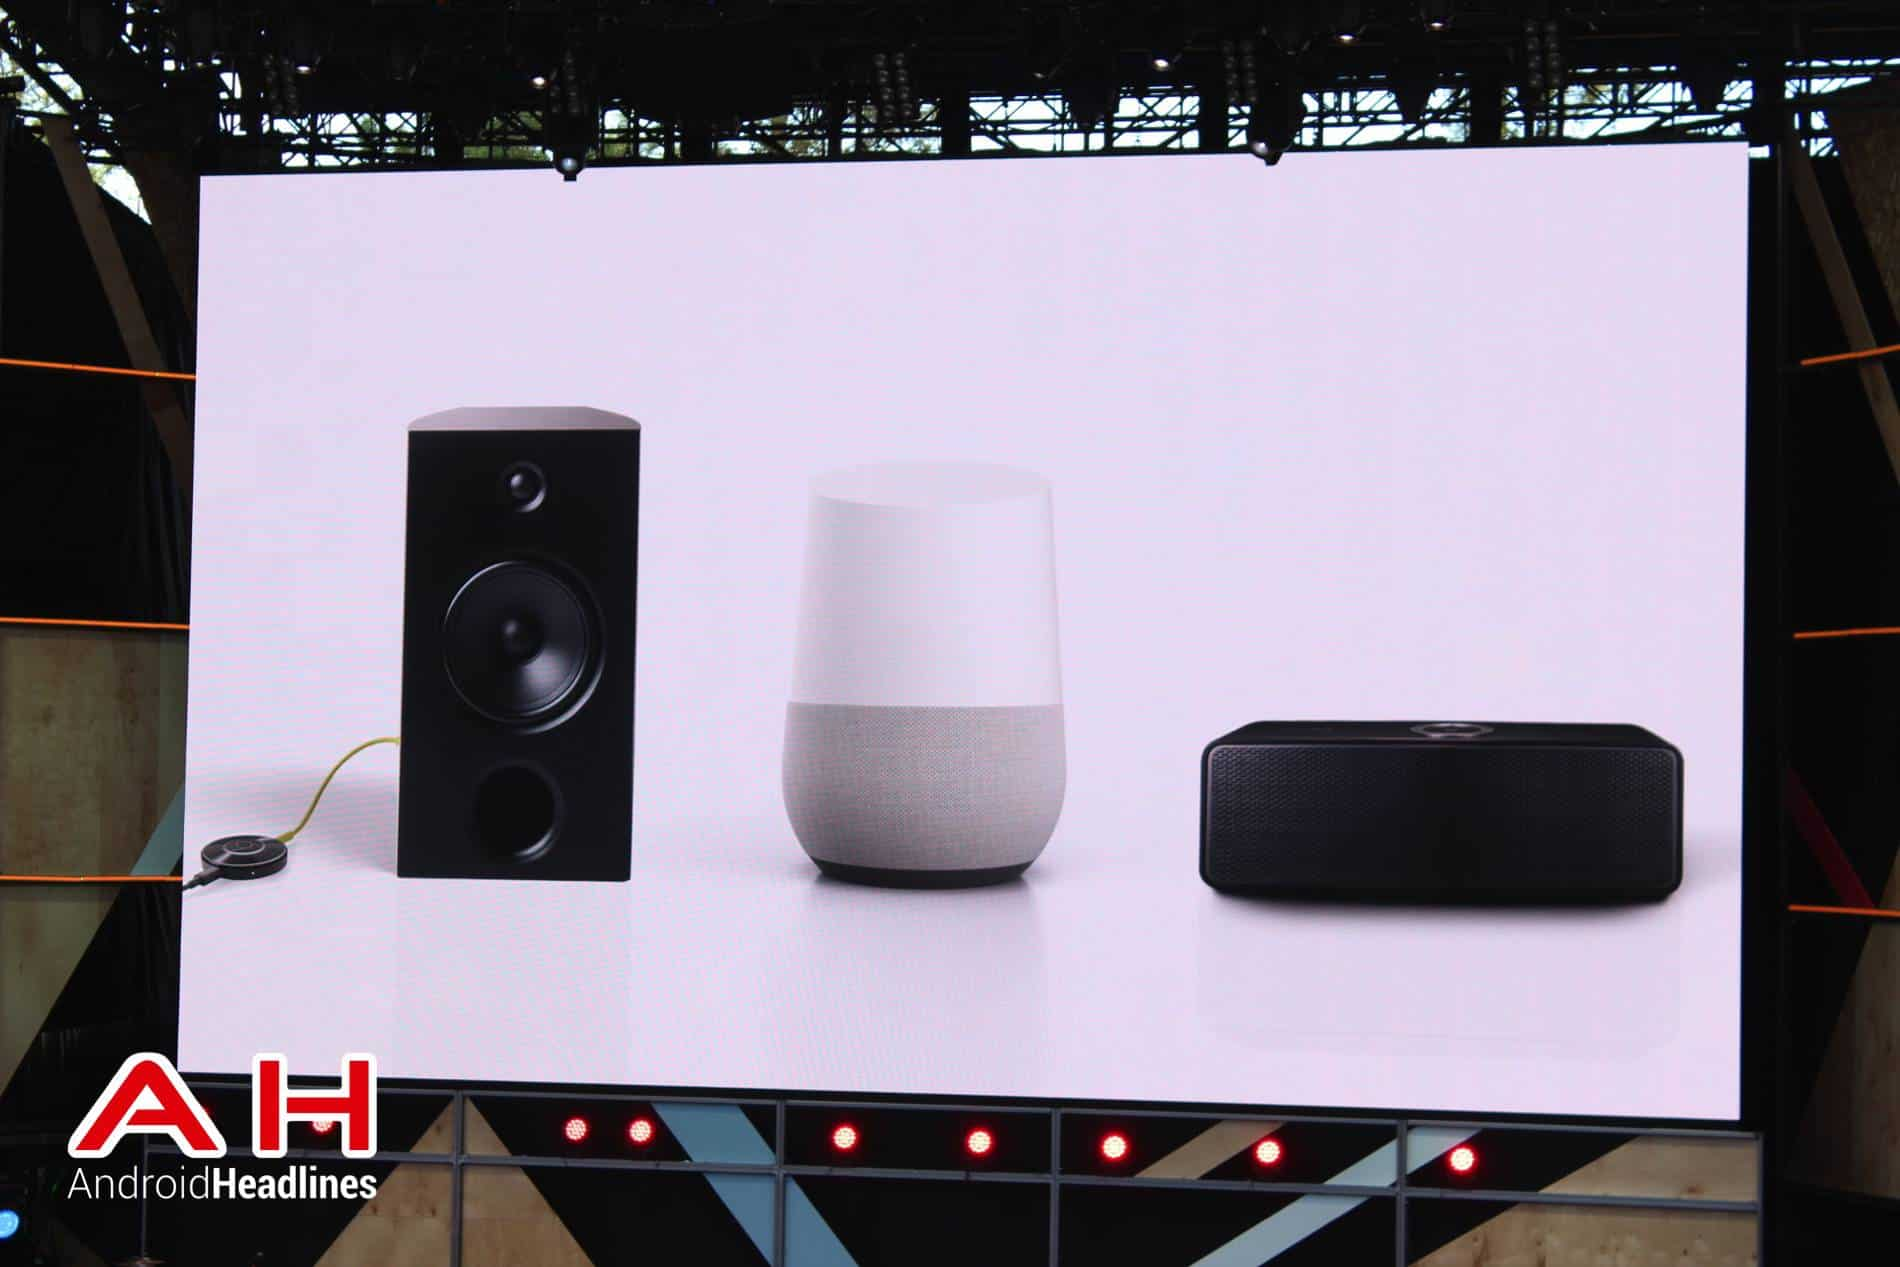 Google IO Keynote Assistant and Home AH 7